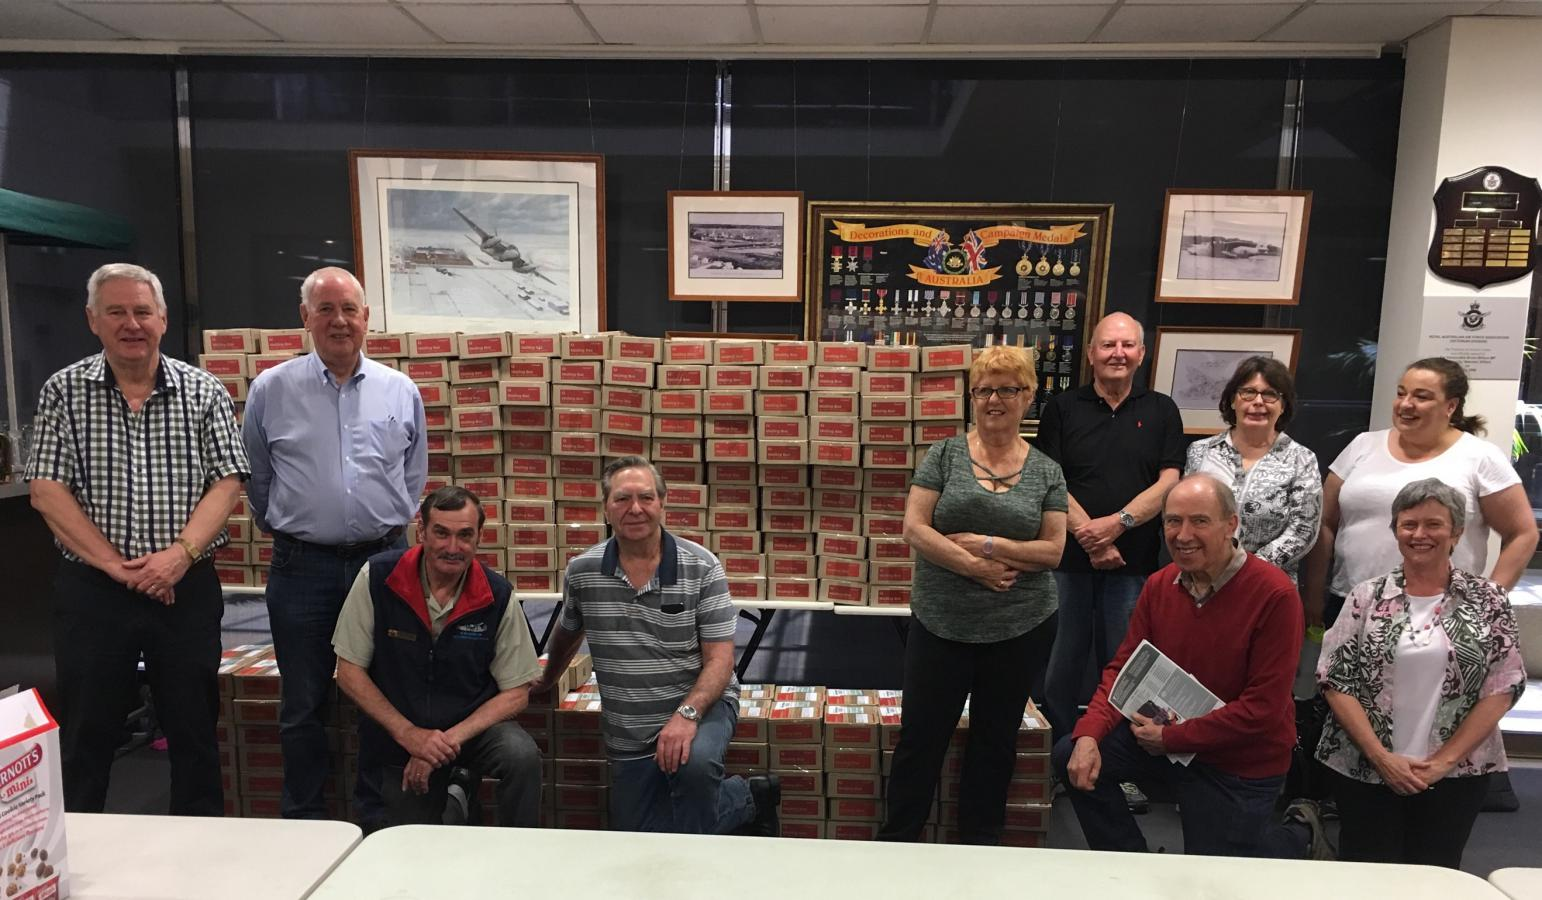 Care Parcel volunteers (L toR): John McCrystal, Max McGregor, Paul Rourke, Bruce Lovett, Di Hoopert, Peter Wilson (Back) Cheryl McCrystal (Back), Carol (Back), Chris Hudnott (Front), Barb Stallard (Office) (Front)